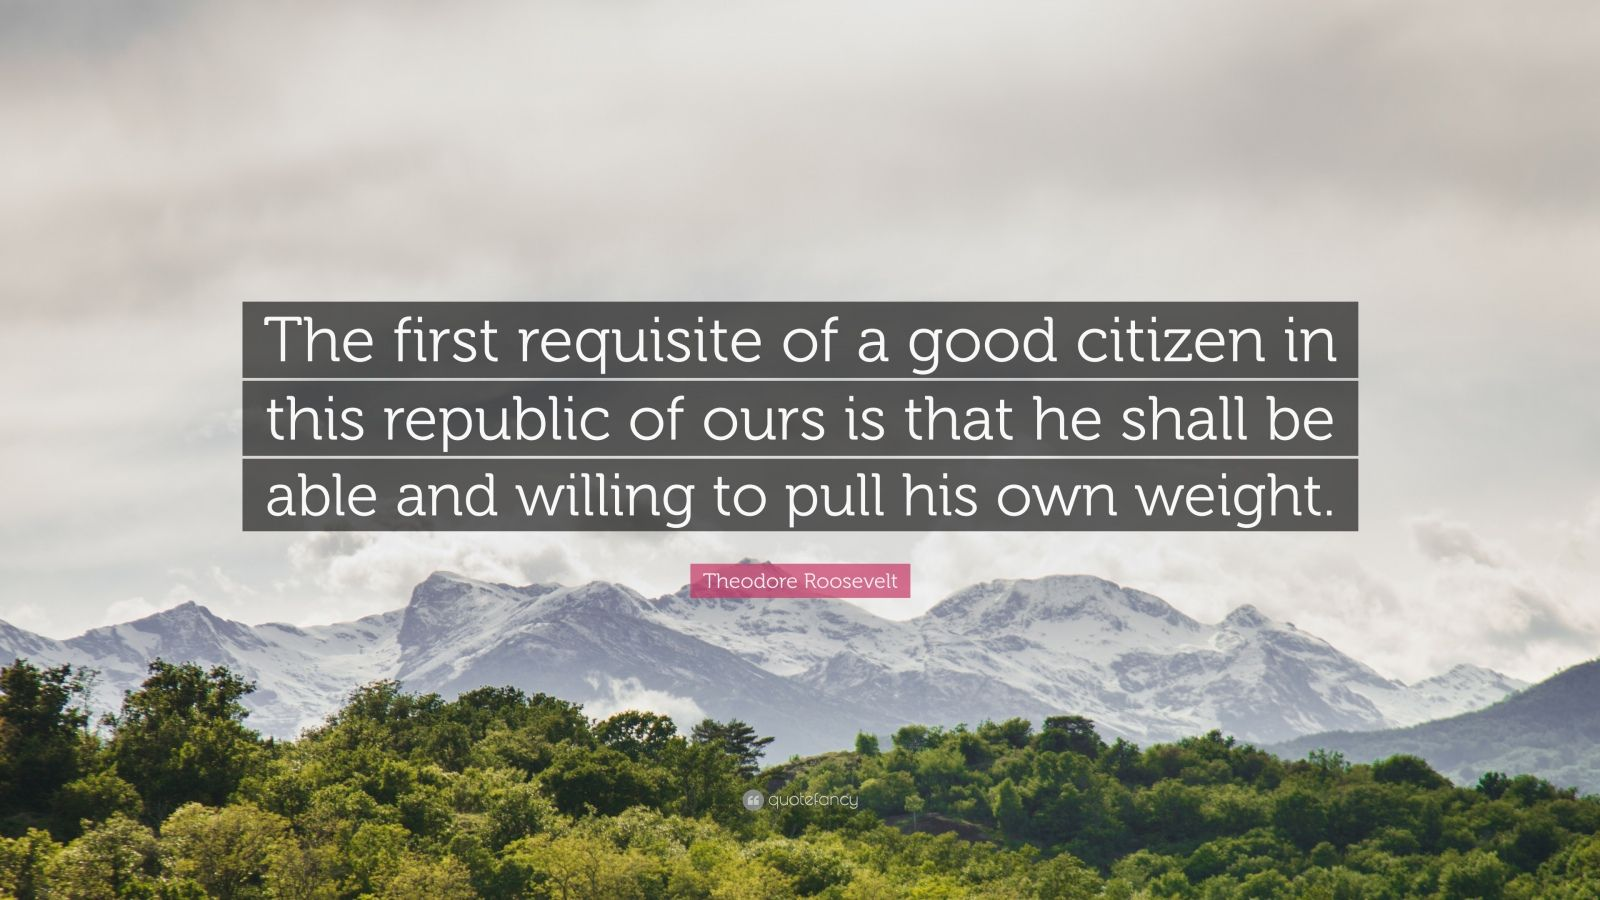 """Theodore Roosevelt Quote: """"The first requisite of a good citizen in this republic of ours is that he shall be able and willing to pull his own weight."""""""